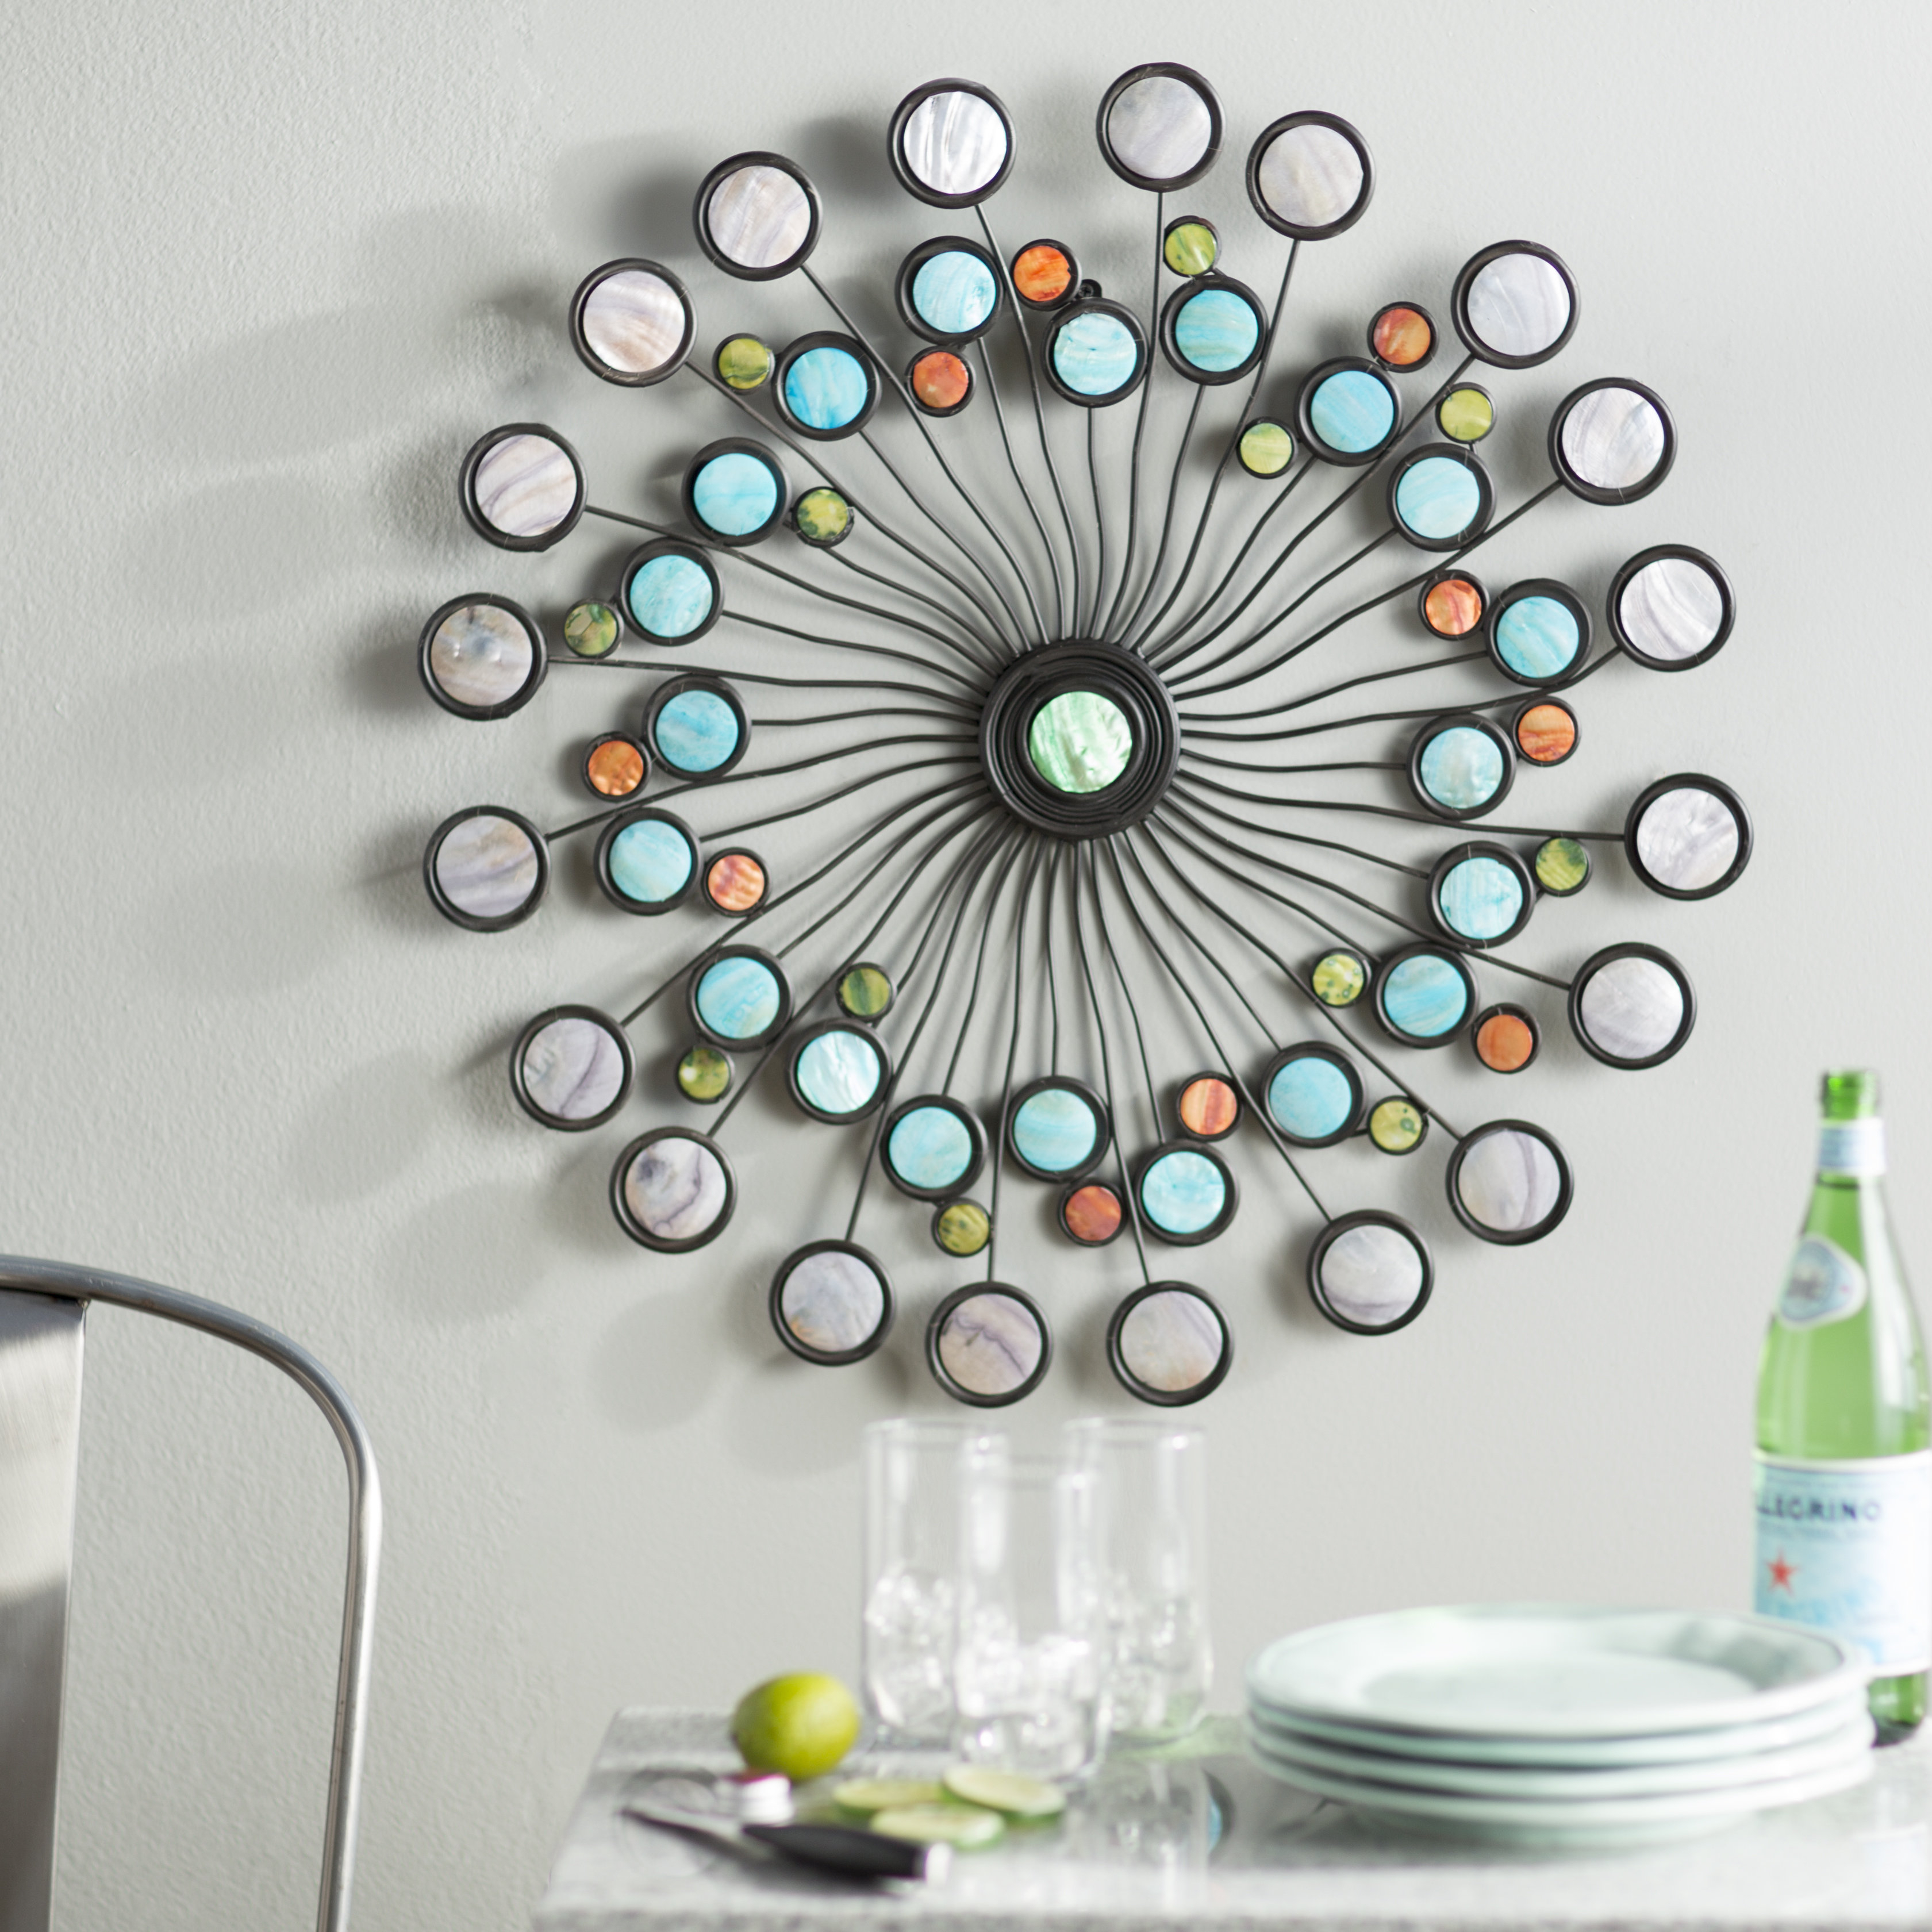 Wayfair Intended For Well Liked Raheem Flowers Metal Wall Decor (View 12 of 20)